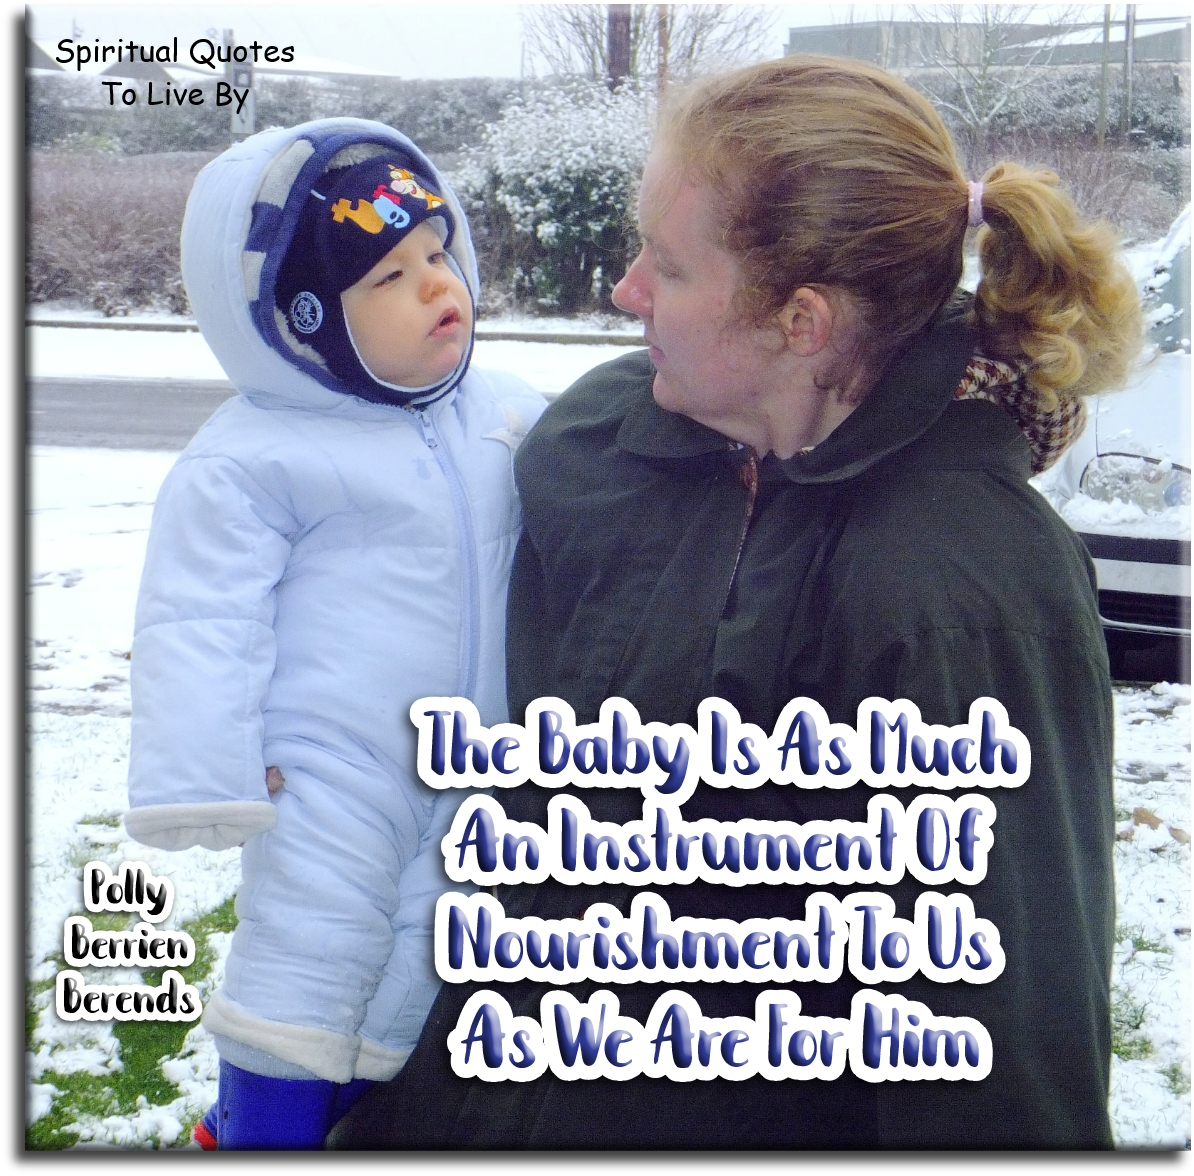 Polly Berrien Berends quote: The baby is as much an instrument of nourishment to us as we are for him. - Spiritual Quotes To Live By